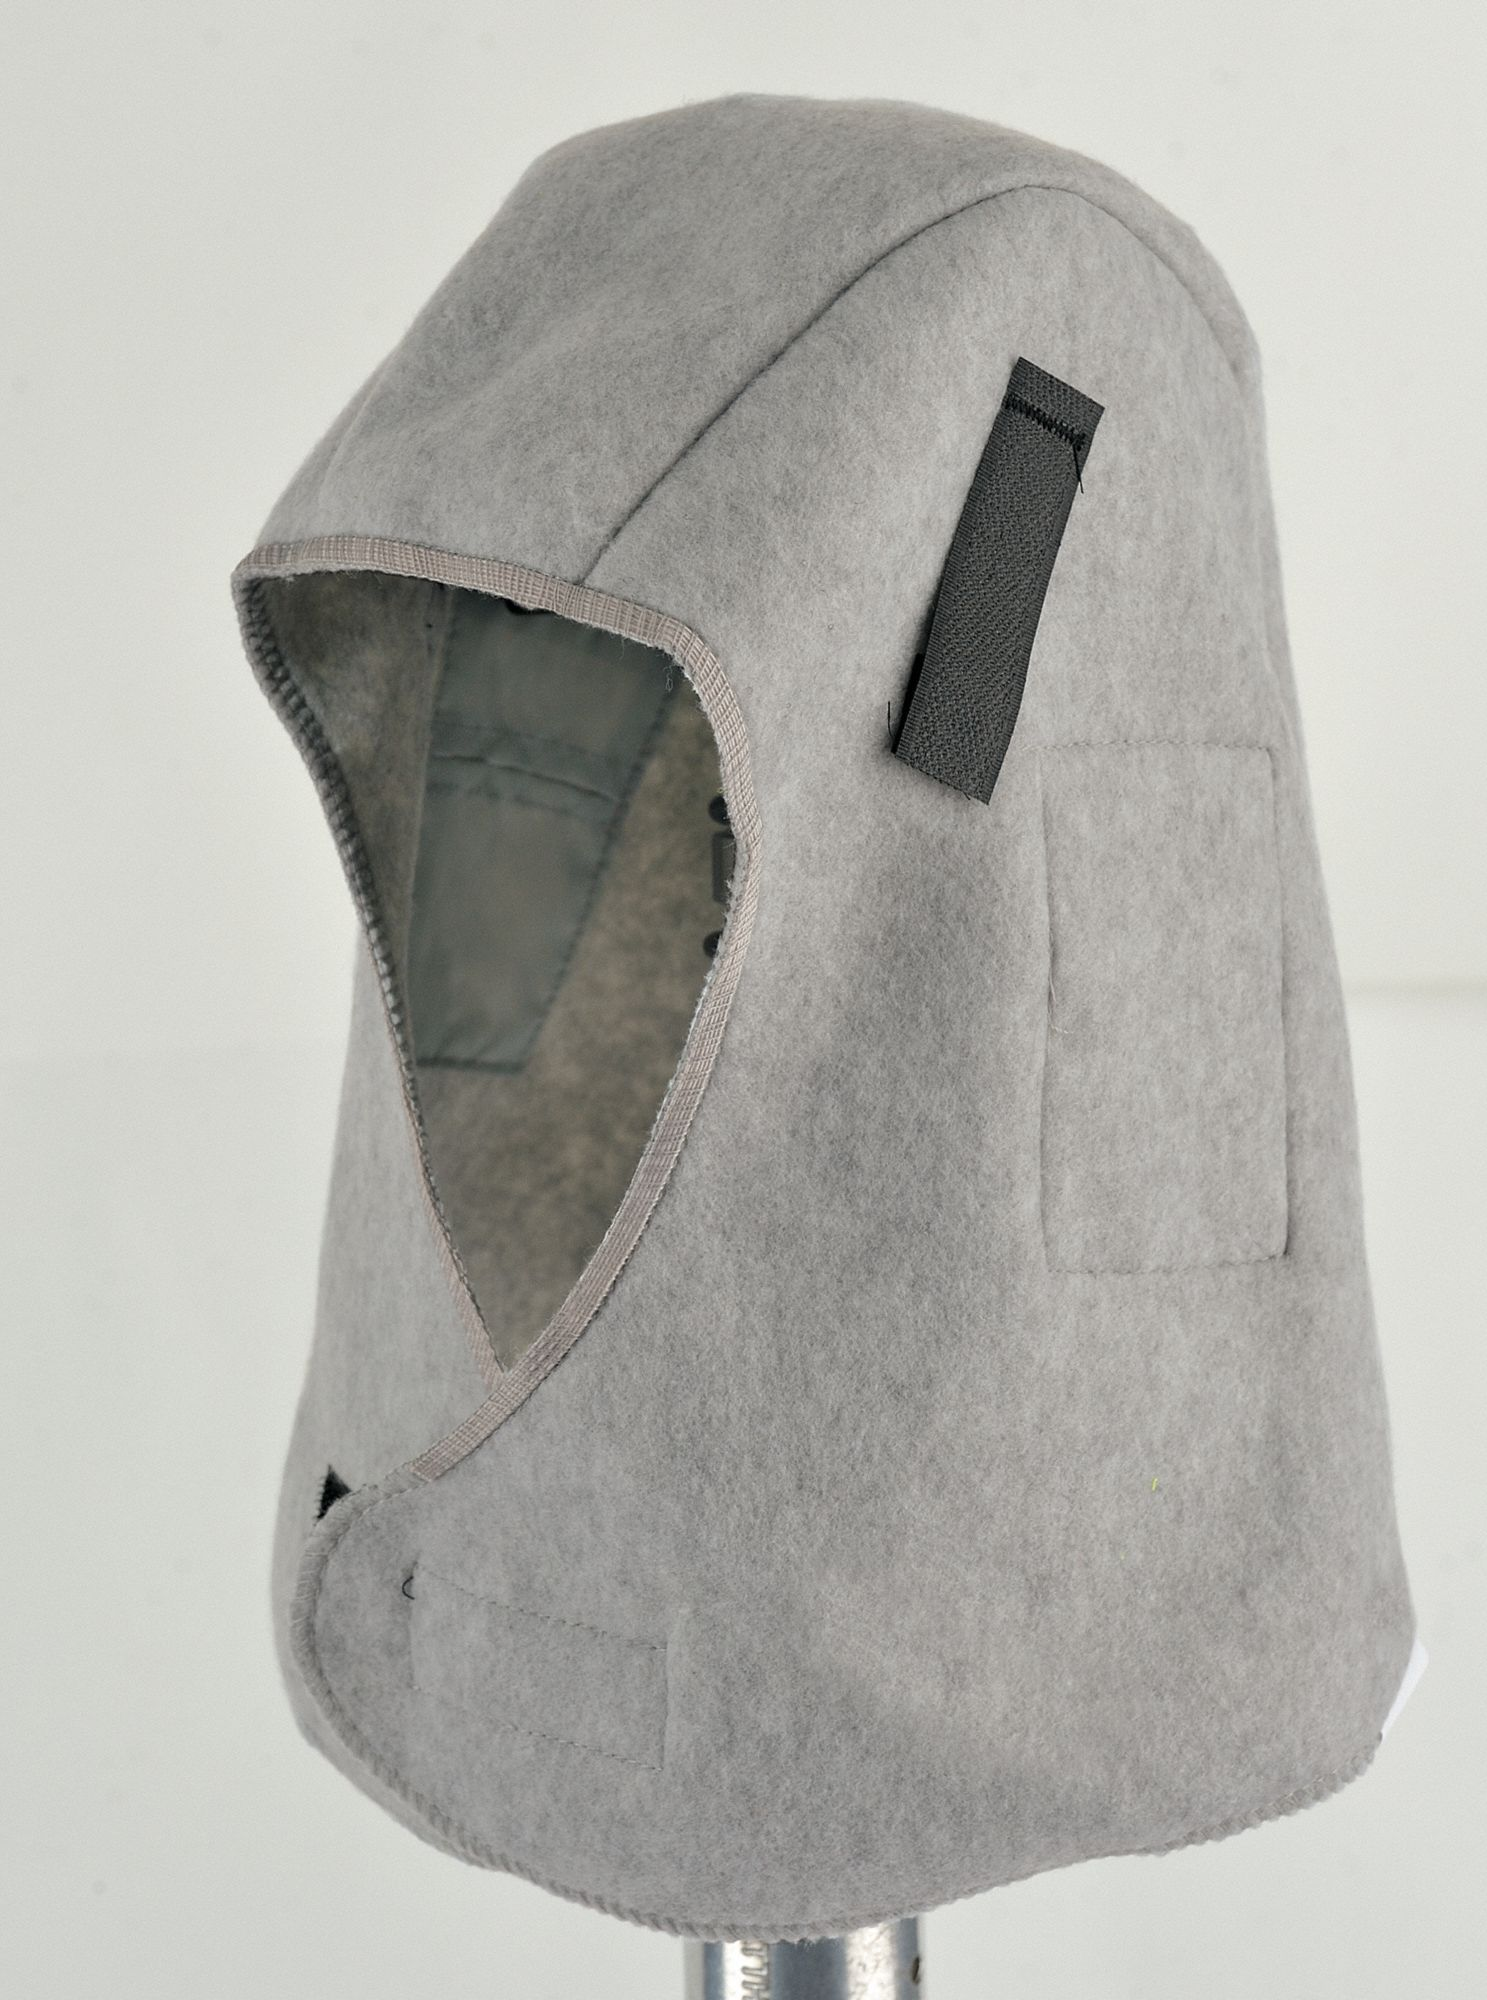 Winter Liner,  Universal,  Hook-and-Loop Adjustment Type,  Gray,  Covers Ears, Head, Neck